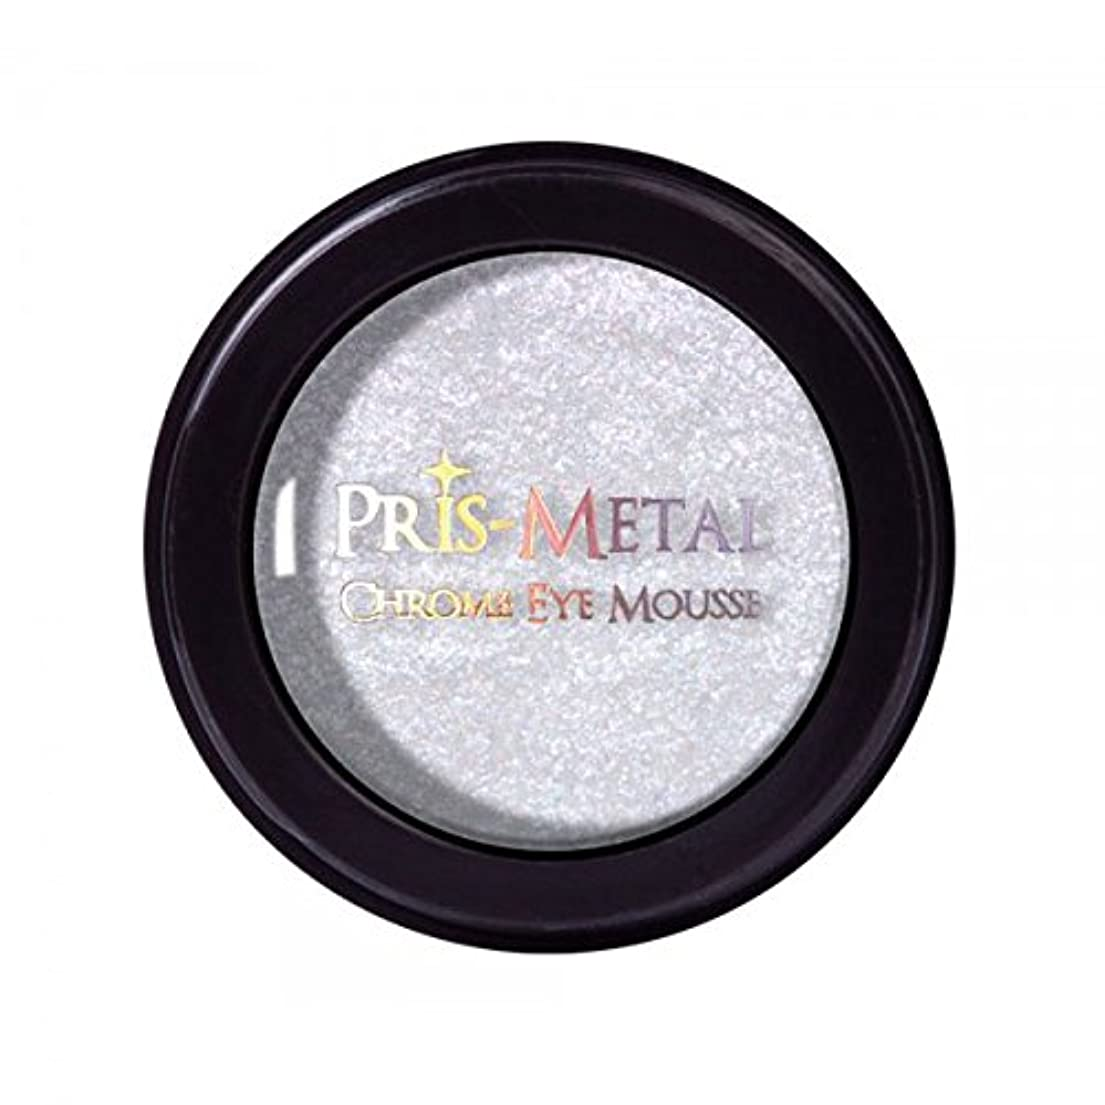 音楽を聴く科学デマンドJ. CAT BEAUTY Pris-Metal Chrome Eye Mousse - Holography Types (並行輸入品)